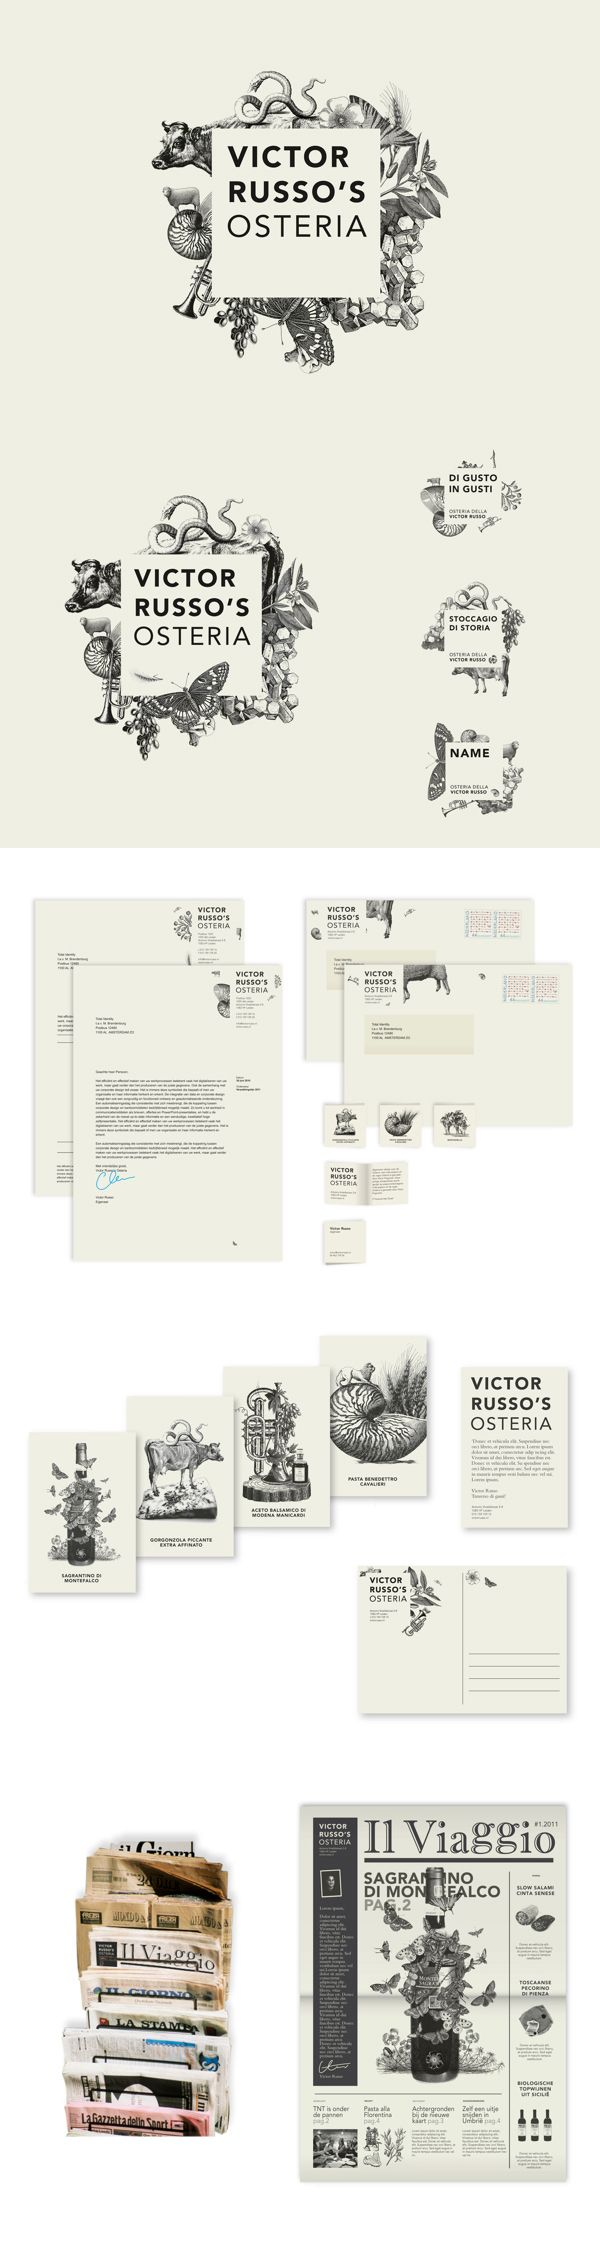 Total Identity design for Victor Russo's Osteria https://www.behance.net/gallery/Victor-Russos-Osteria/6167787